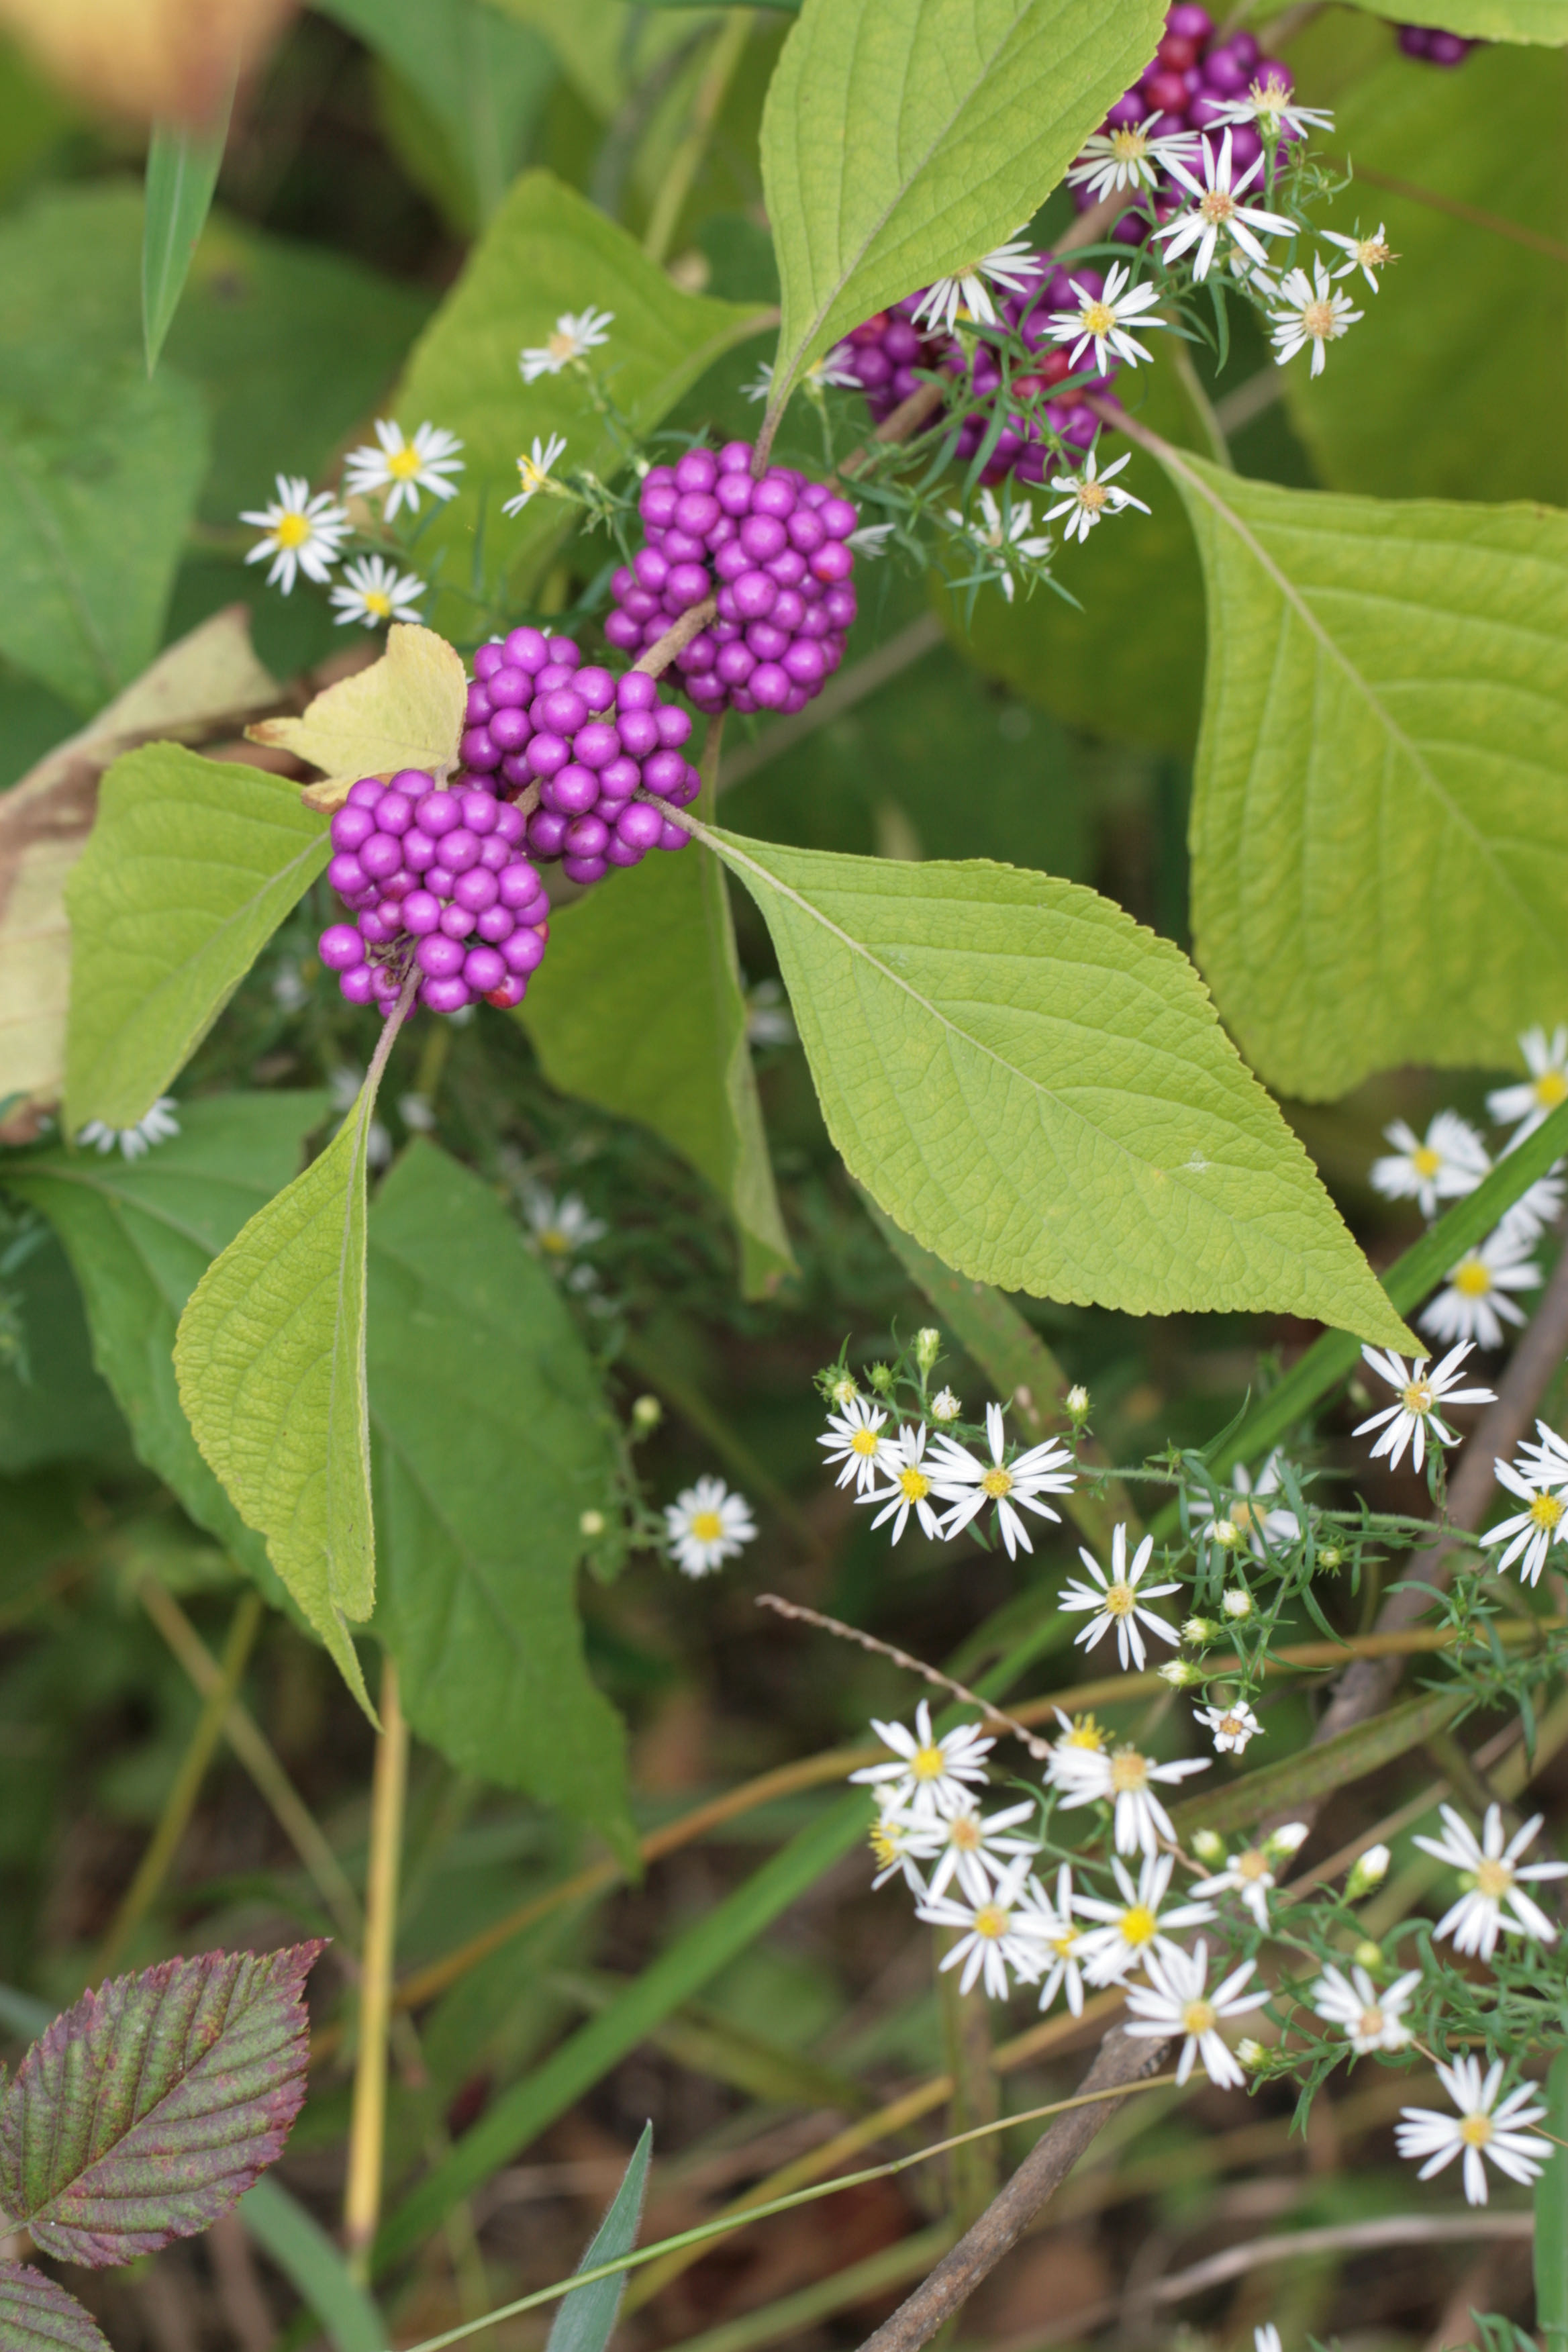 The Scientific Name is Callicarpa americana. You will likely hear them called Beautyberry, American Beautyberry, French-mulberry. This picture shows the A pretty combination with Symphyotrichum pilosum of Callicarpa americana